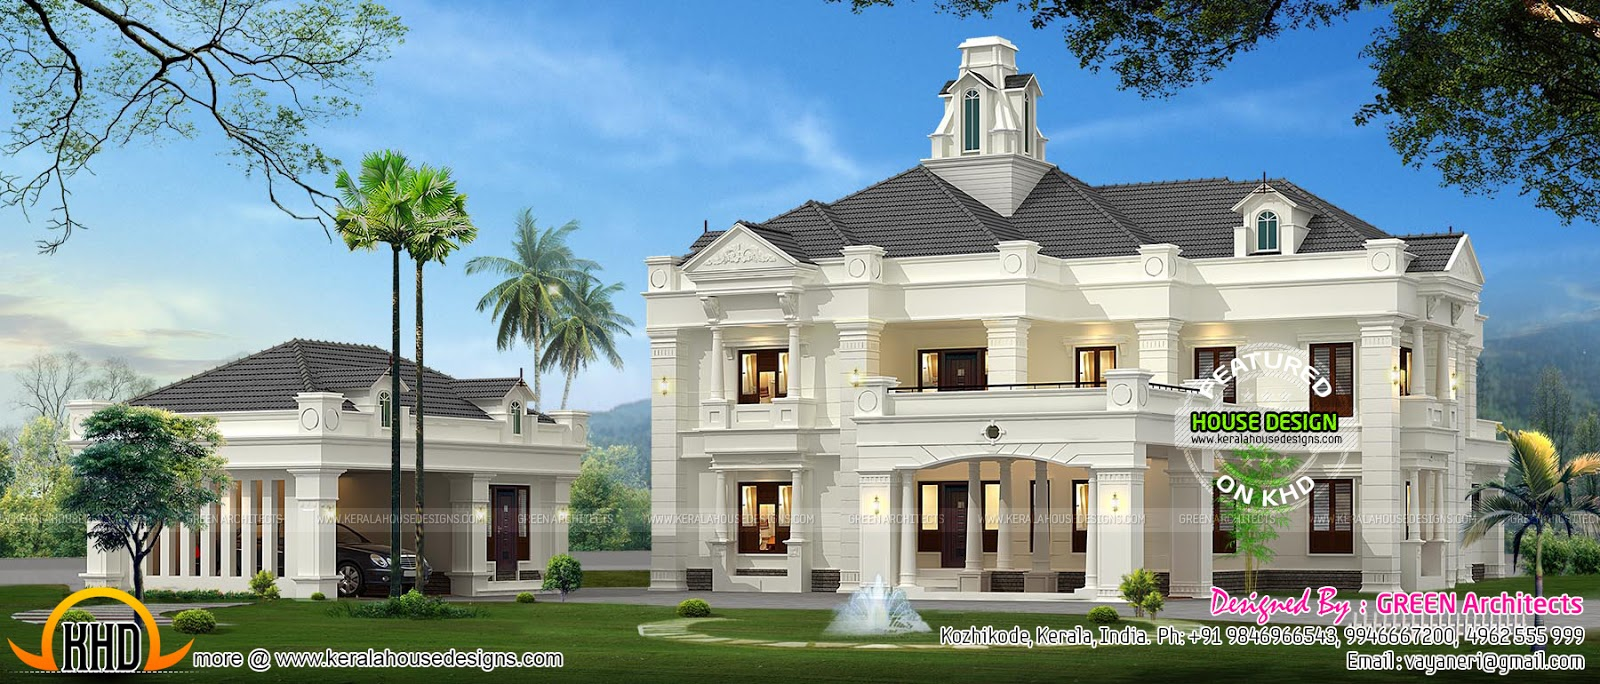 Colonial style indian house kerala home design and floor Colonial style house